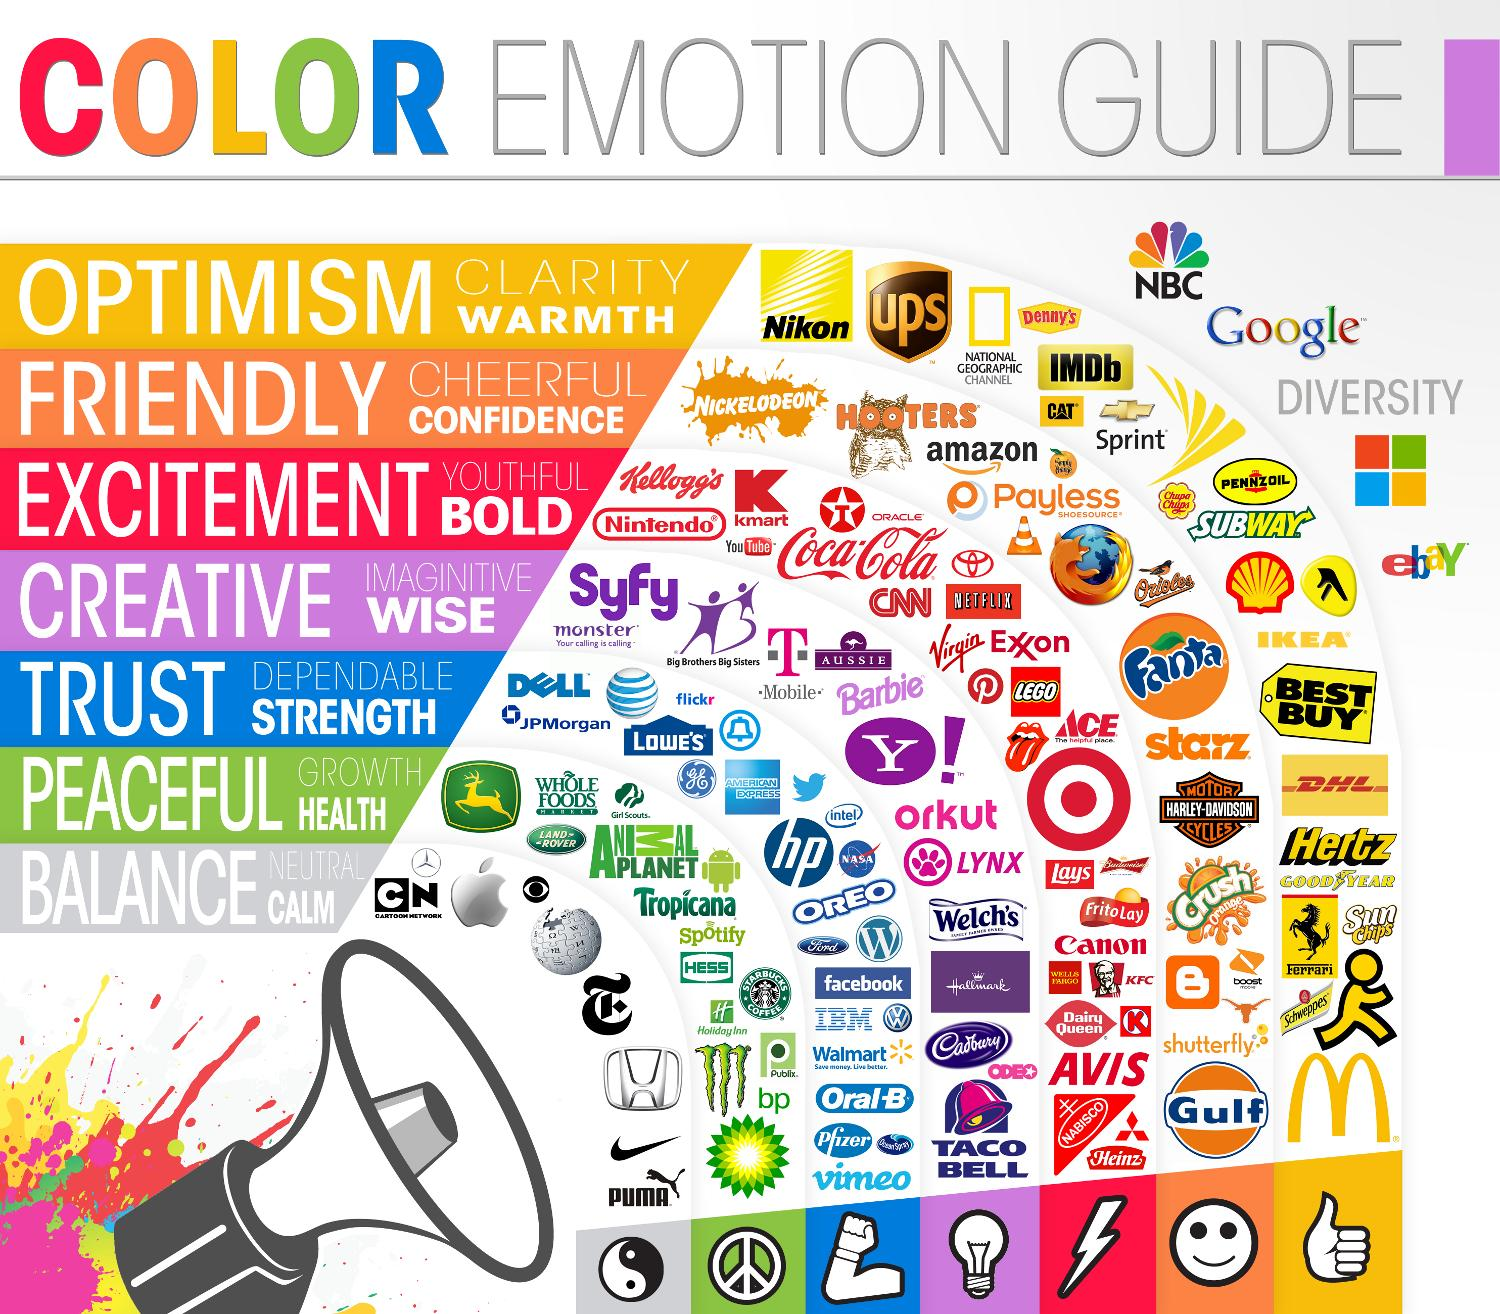 Color-Psychology-1024x897.jpg